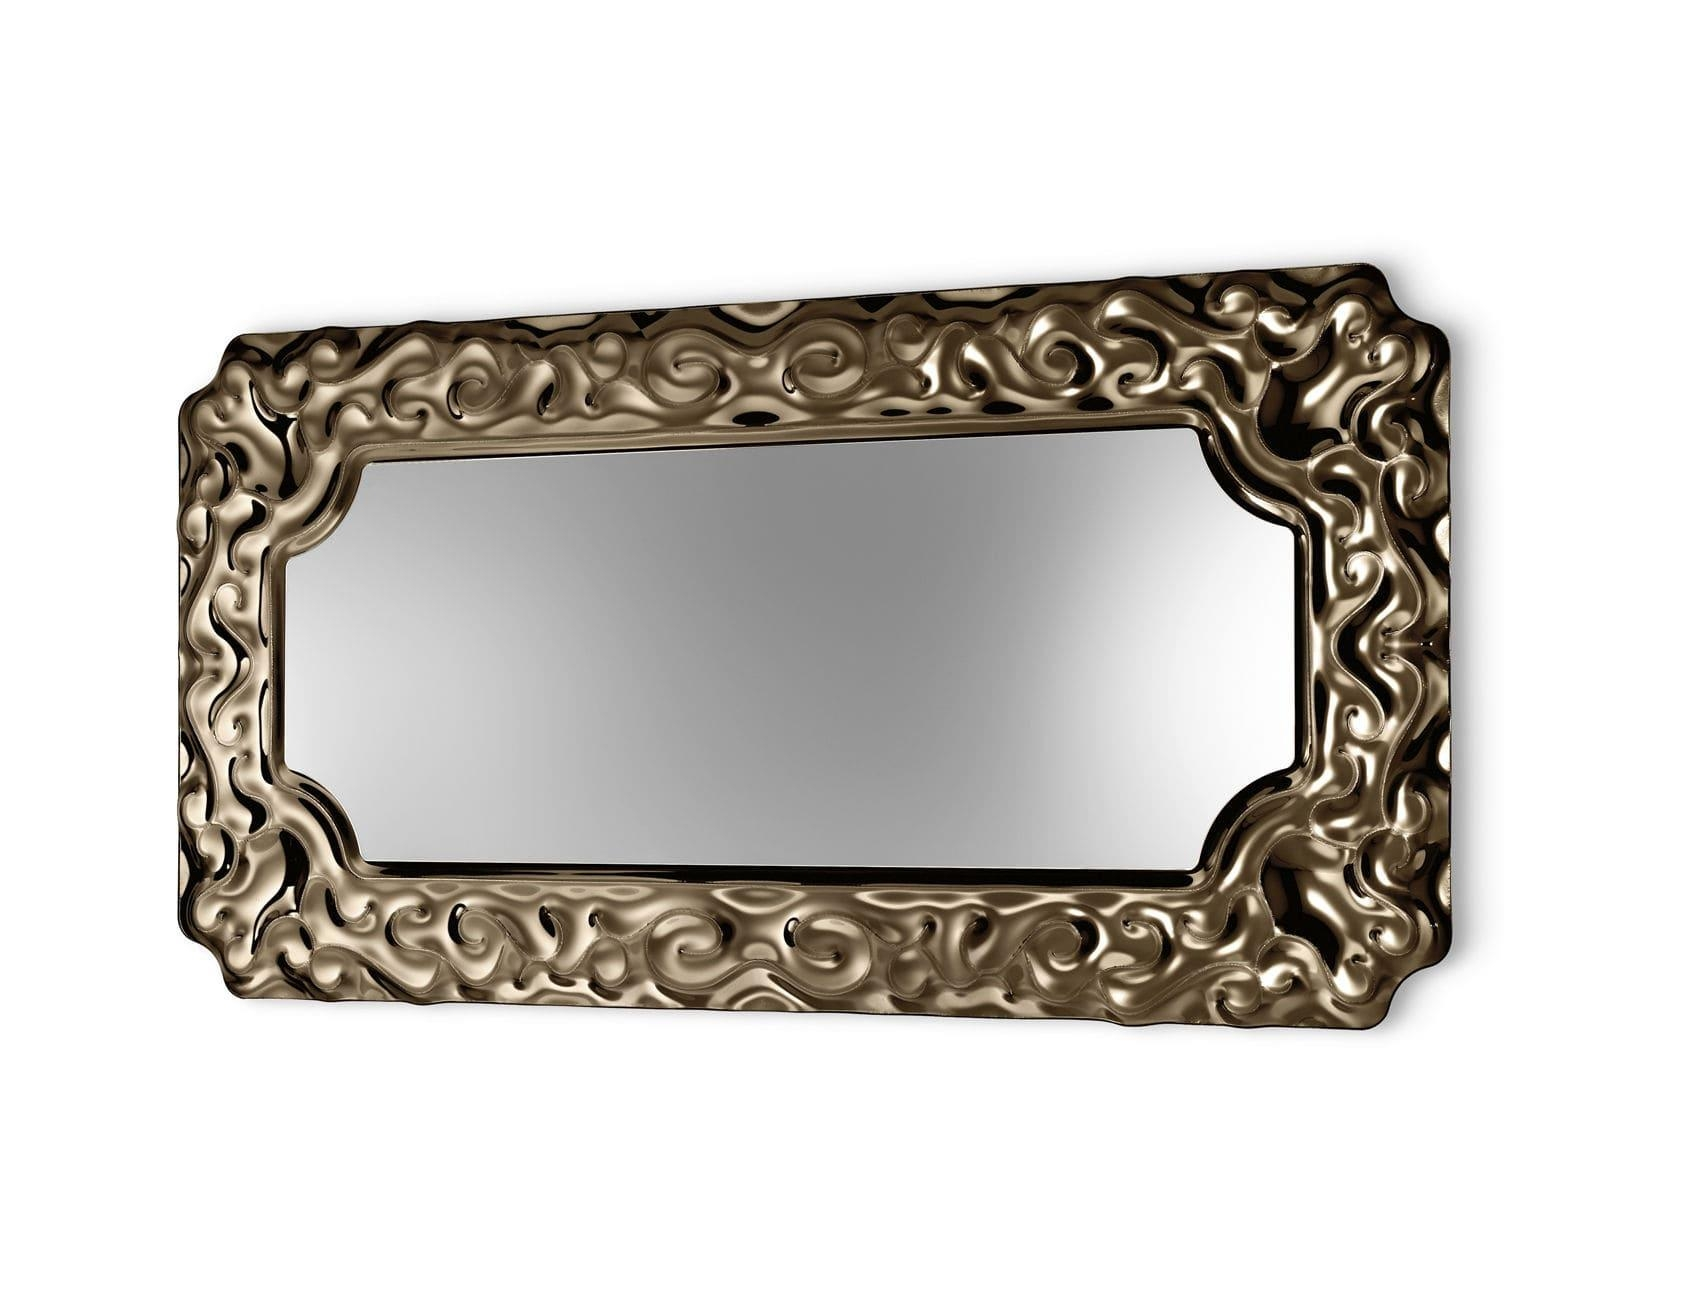 Wall Mounted Mirror / New Baroque Design / Metal – New Baroque For Baroque Wall Mirror (View 13 of 20)